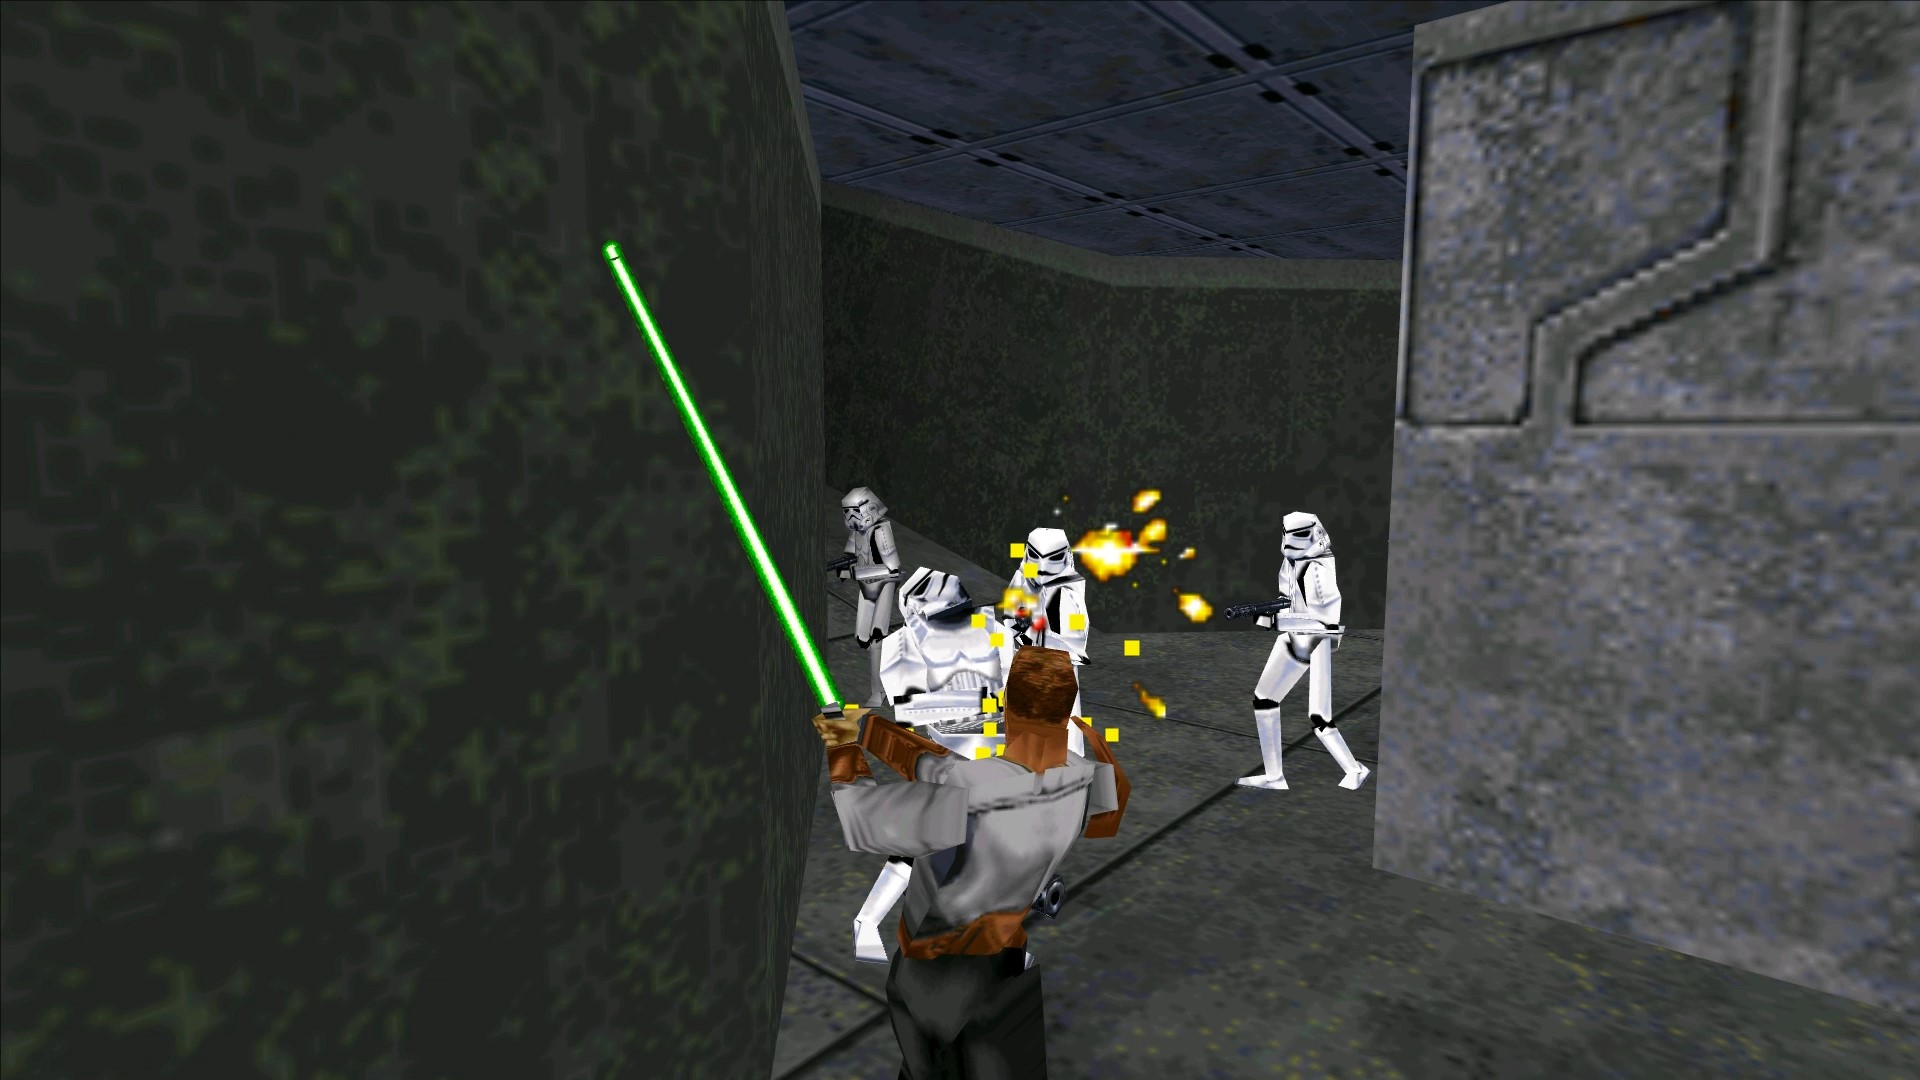 <center>Stormtroopers will come, but your lightsaber will make quick work of their blaster fire and limbs.</center>